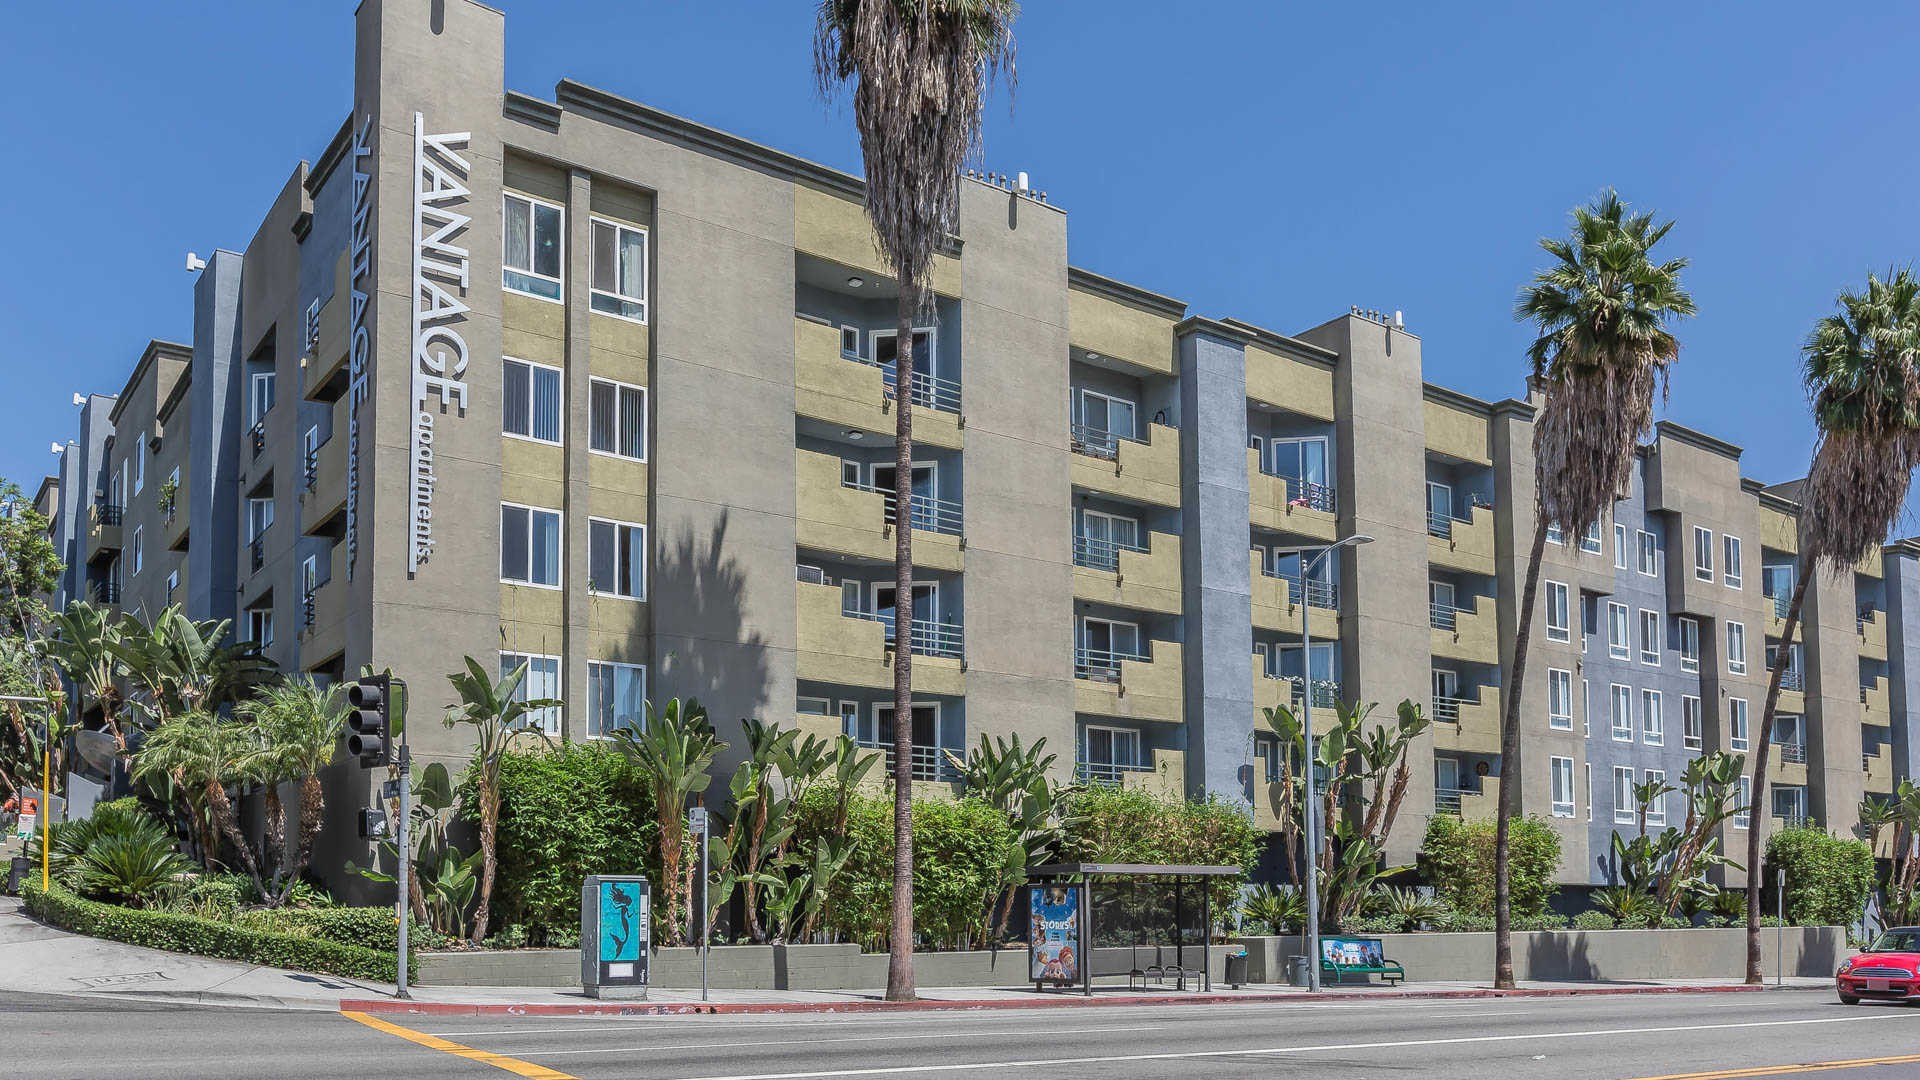 Studio Apartment Hollywood 480 apartments for rent in hollywood hills west, los angeles, ca